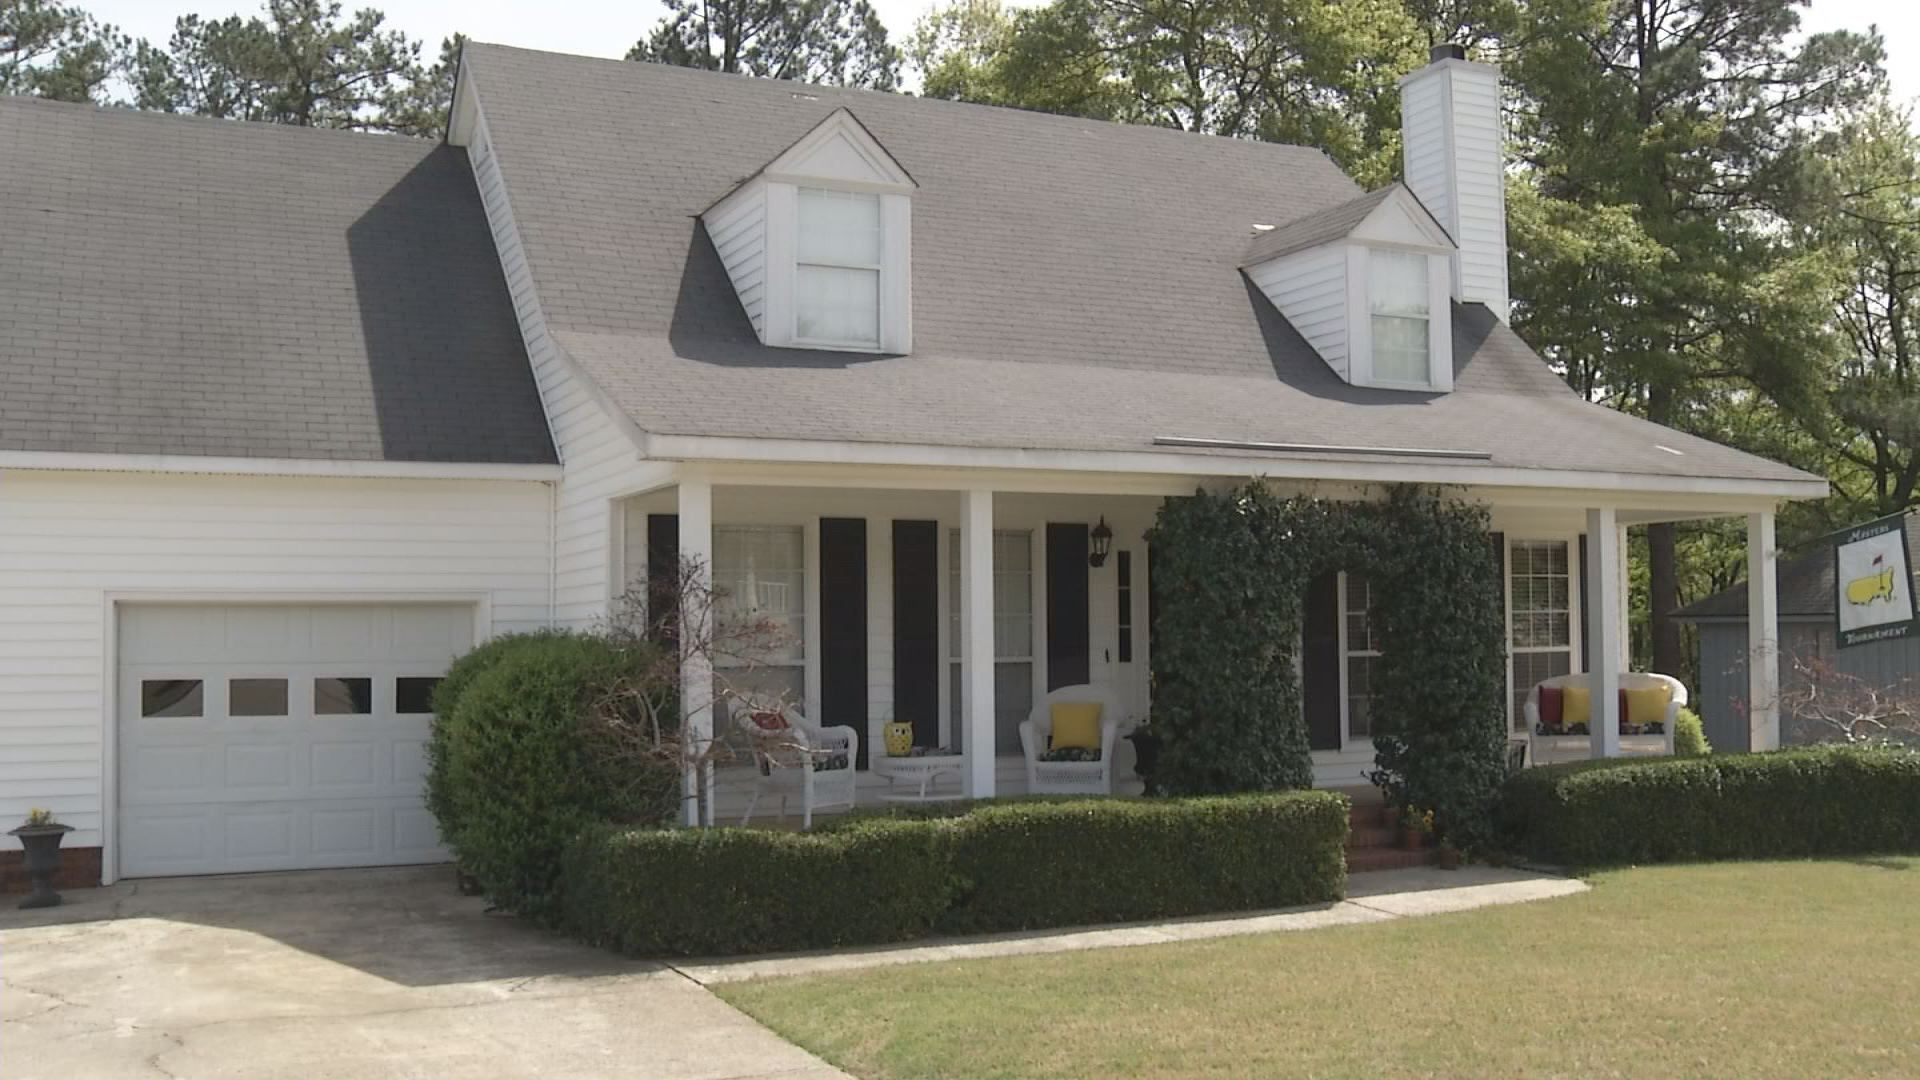 Just days before The Masters Tournament, rental companies say there are still plenty of homes available._132583